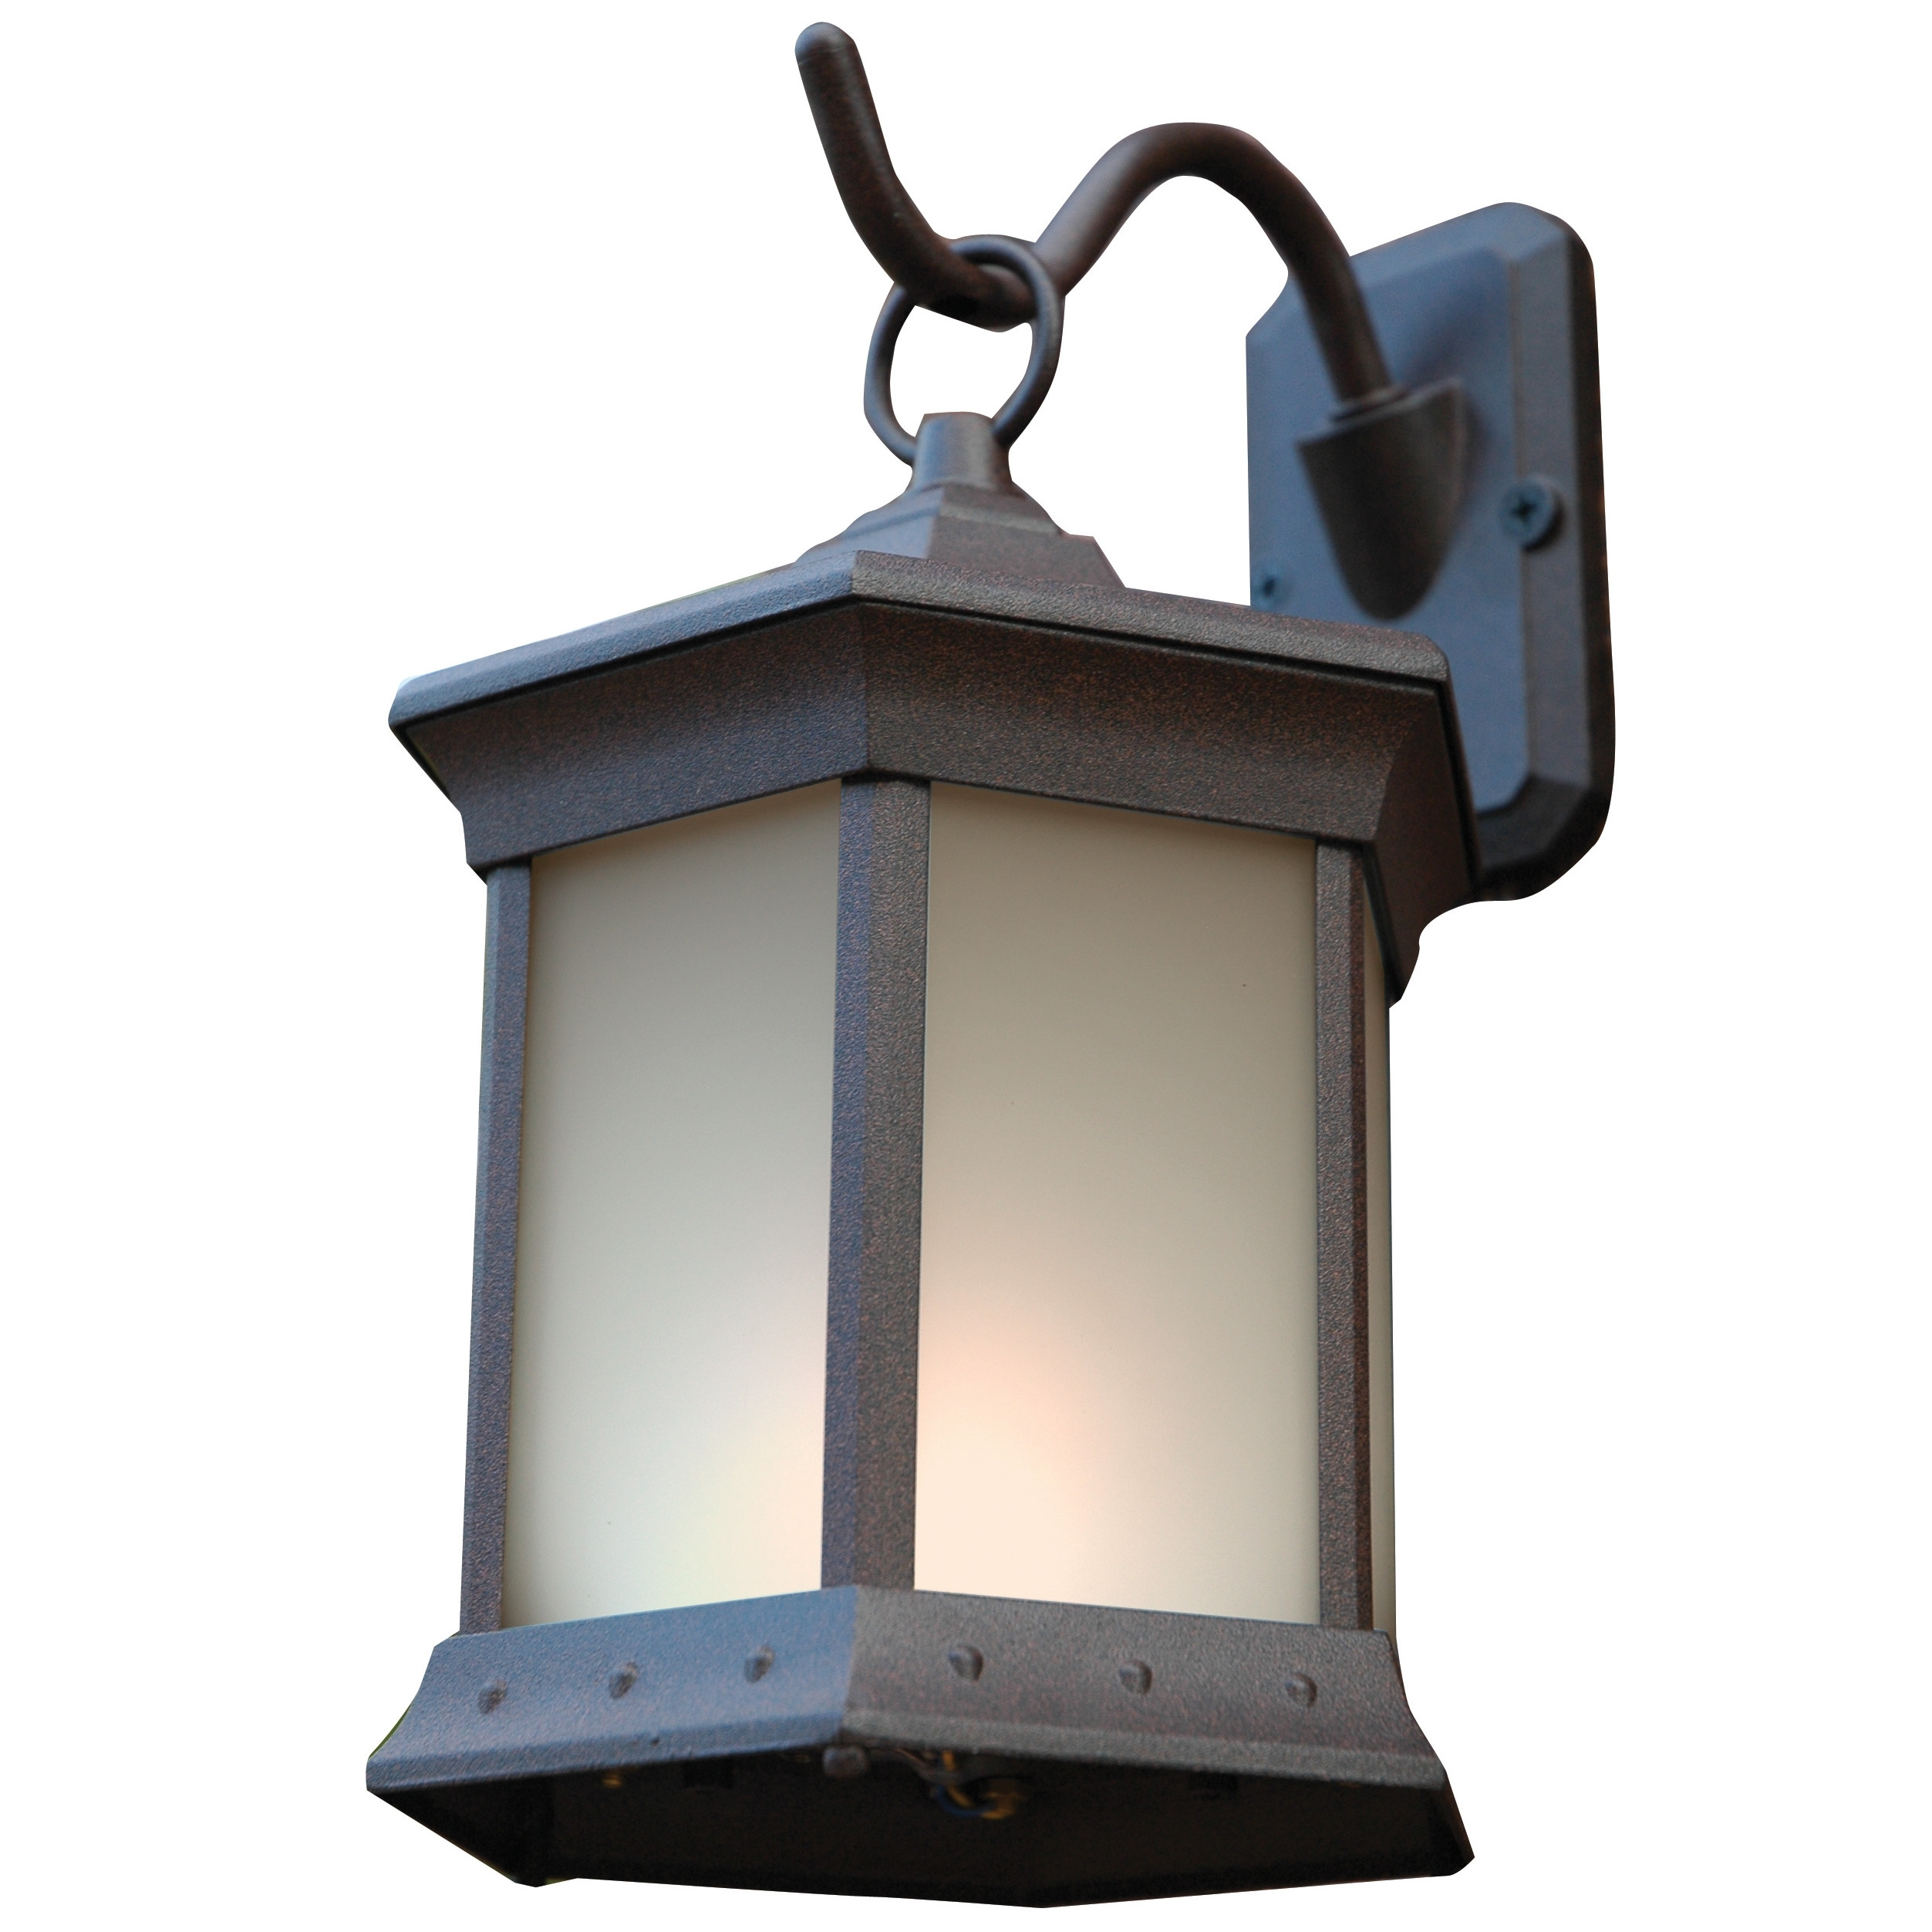 Most Recent Plastic Outdoor Wall Lighting Intended For Plastic Outdoor Wall Lighting Wayfair Pack 1 Light Sconce ~ Loversiq (View 11 of 20)